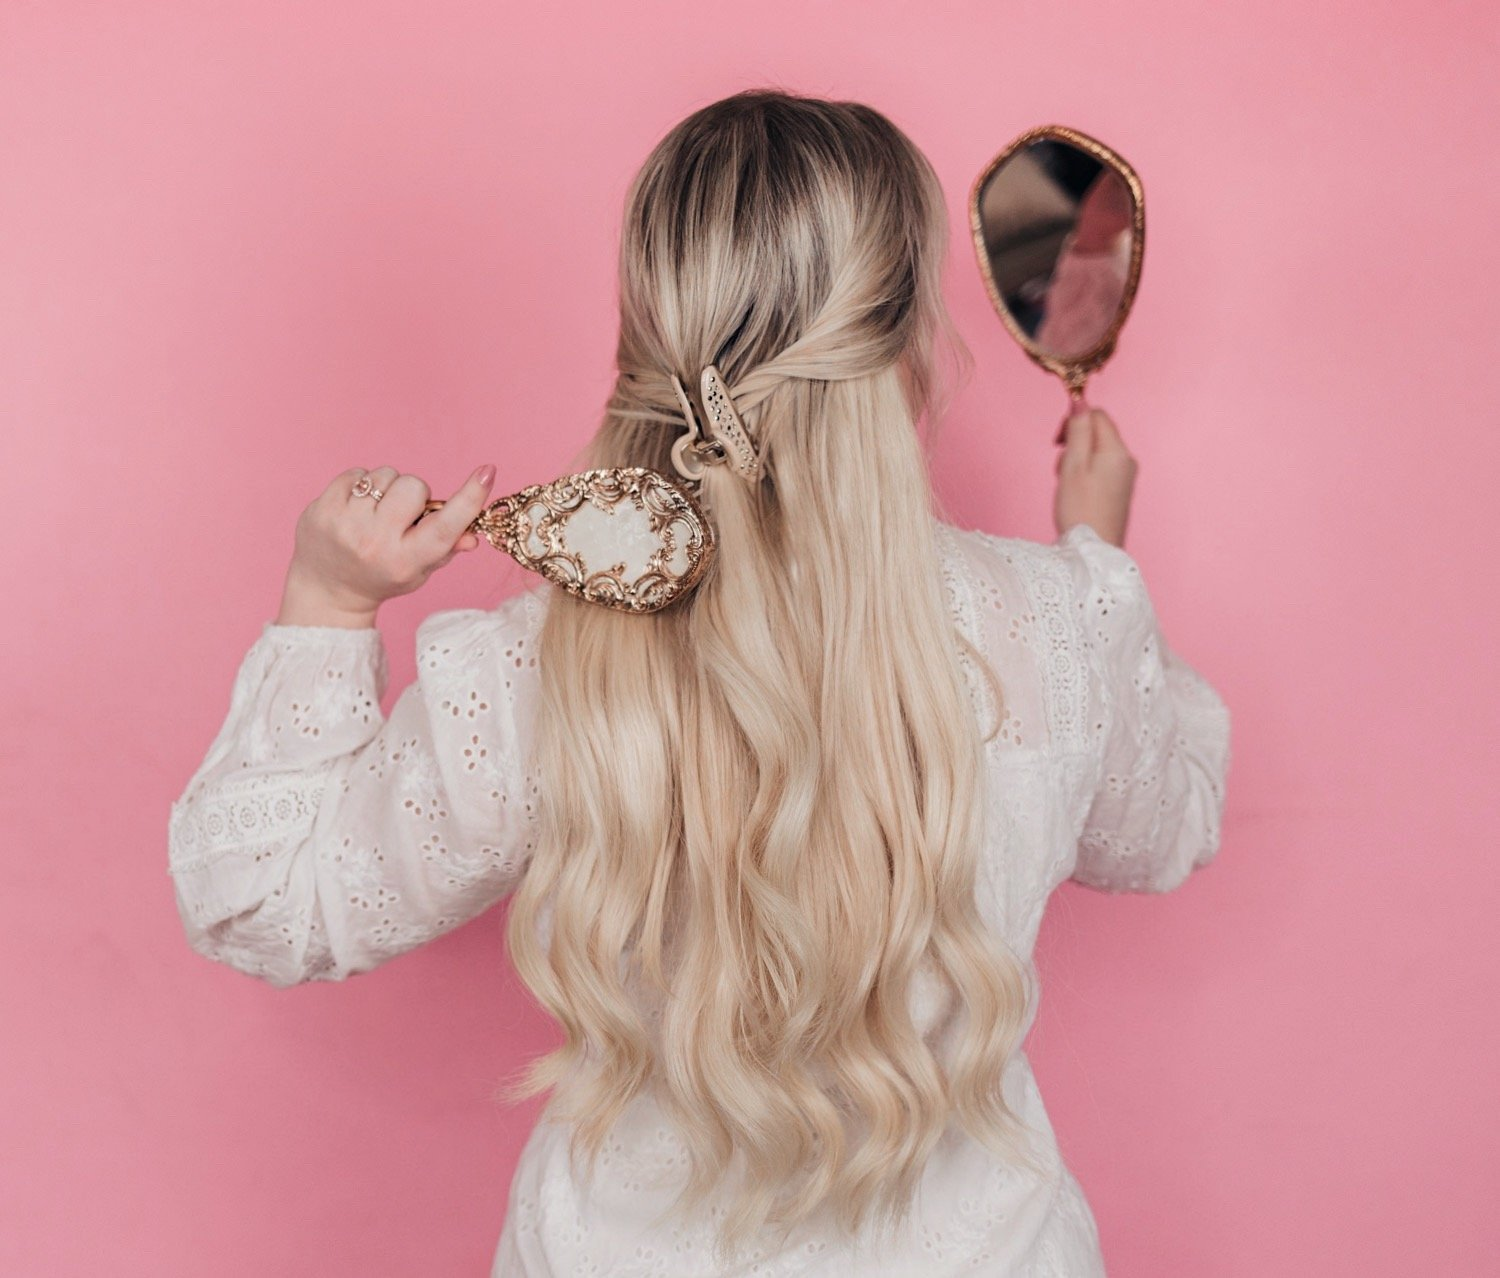 Elizabeth Hugen of Lizzie in Lace shares 5 simple summer hairstyles using hair accessories including a gorgeous embellished jaw clip